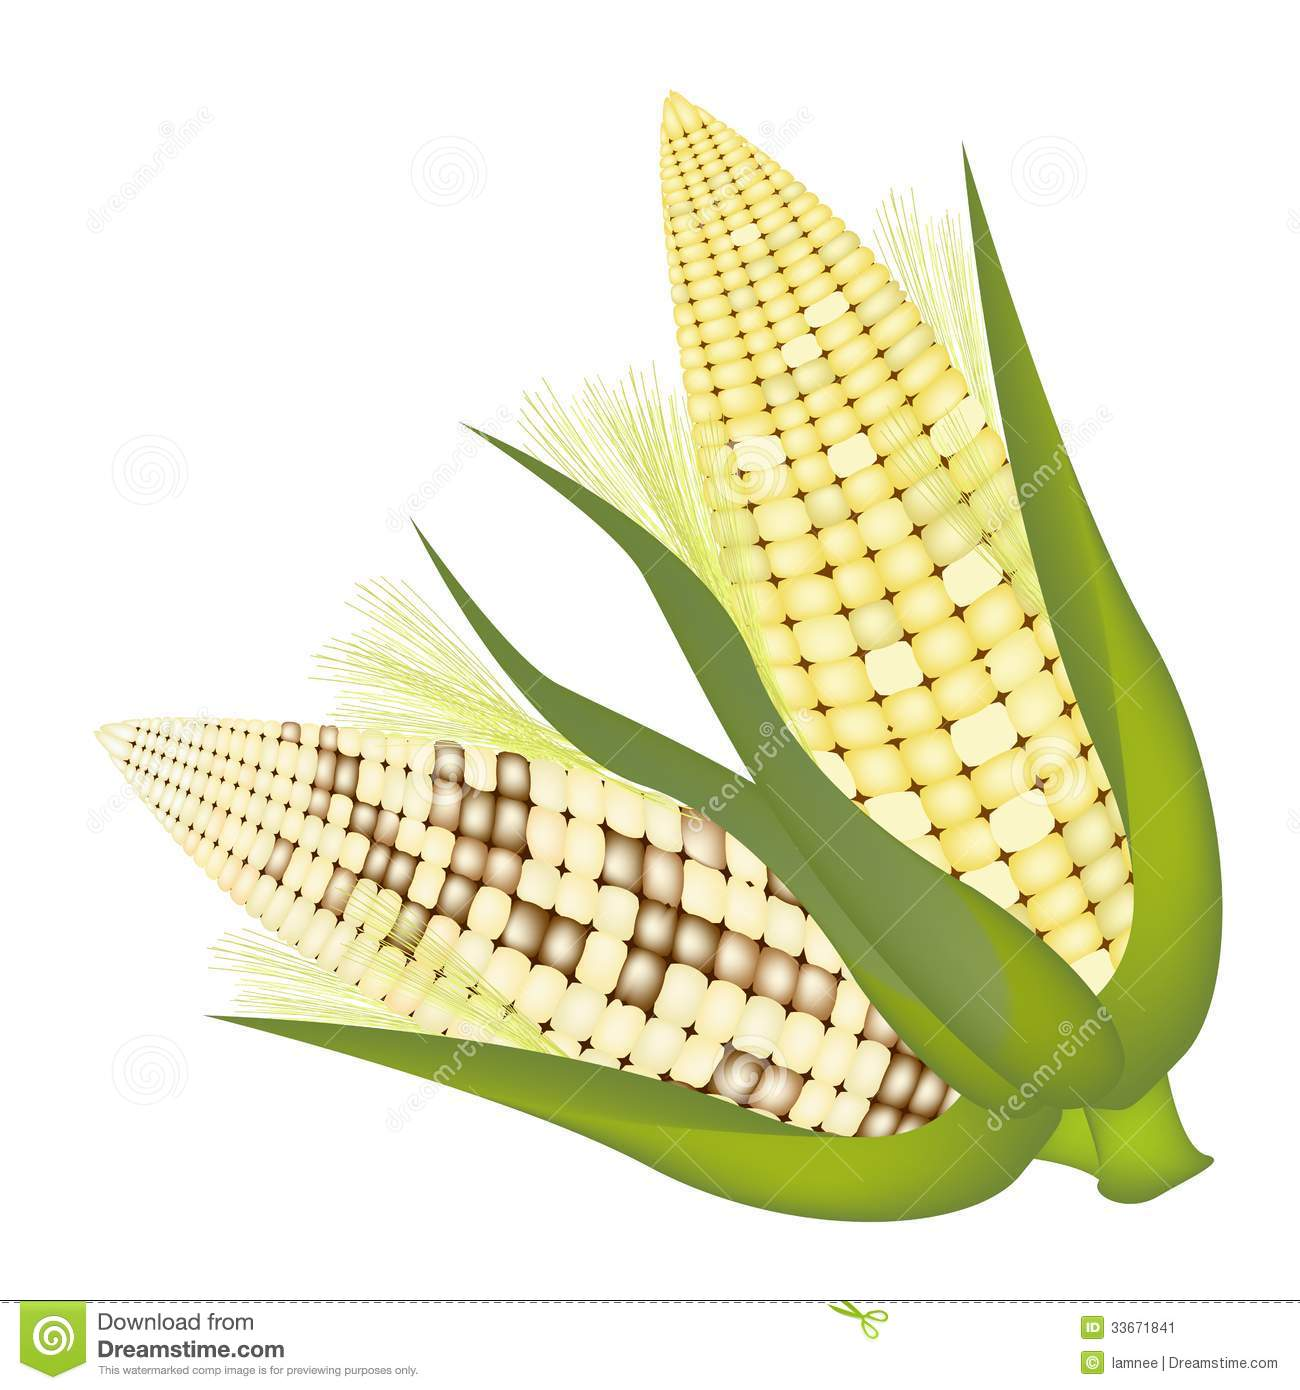 Four Colors Of Fresh Corn With Husk And Silk Stock Image.